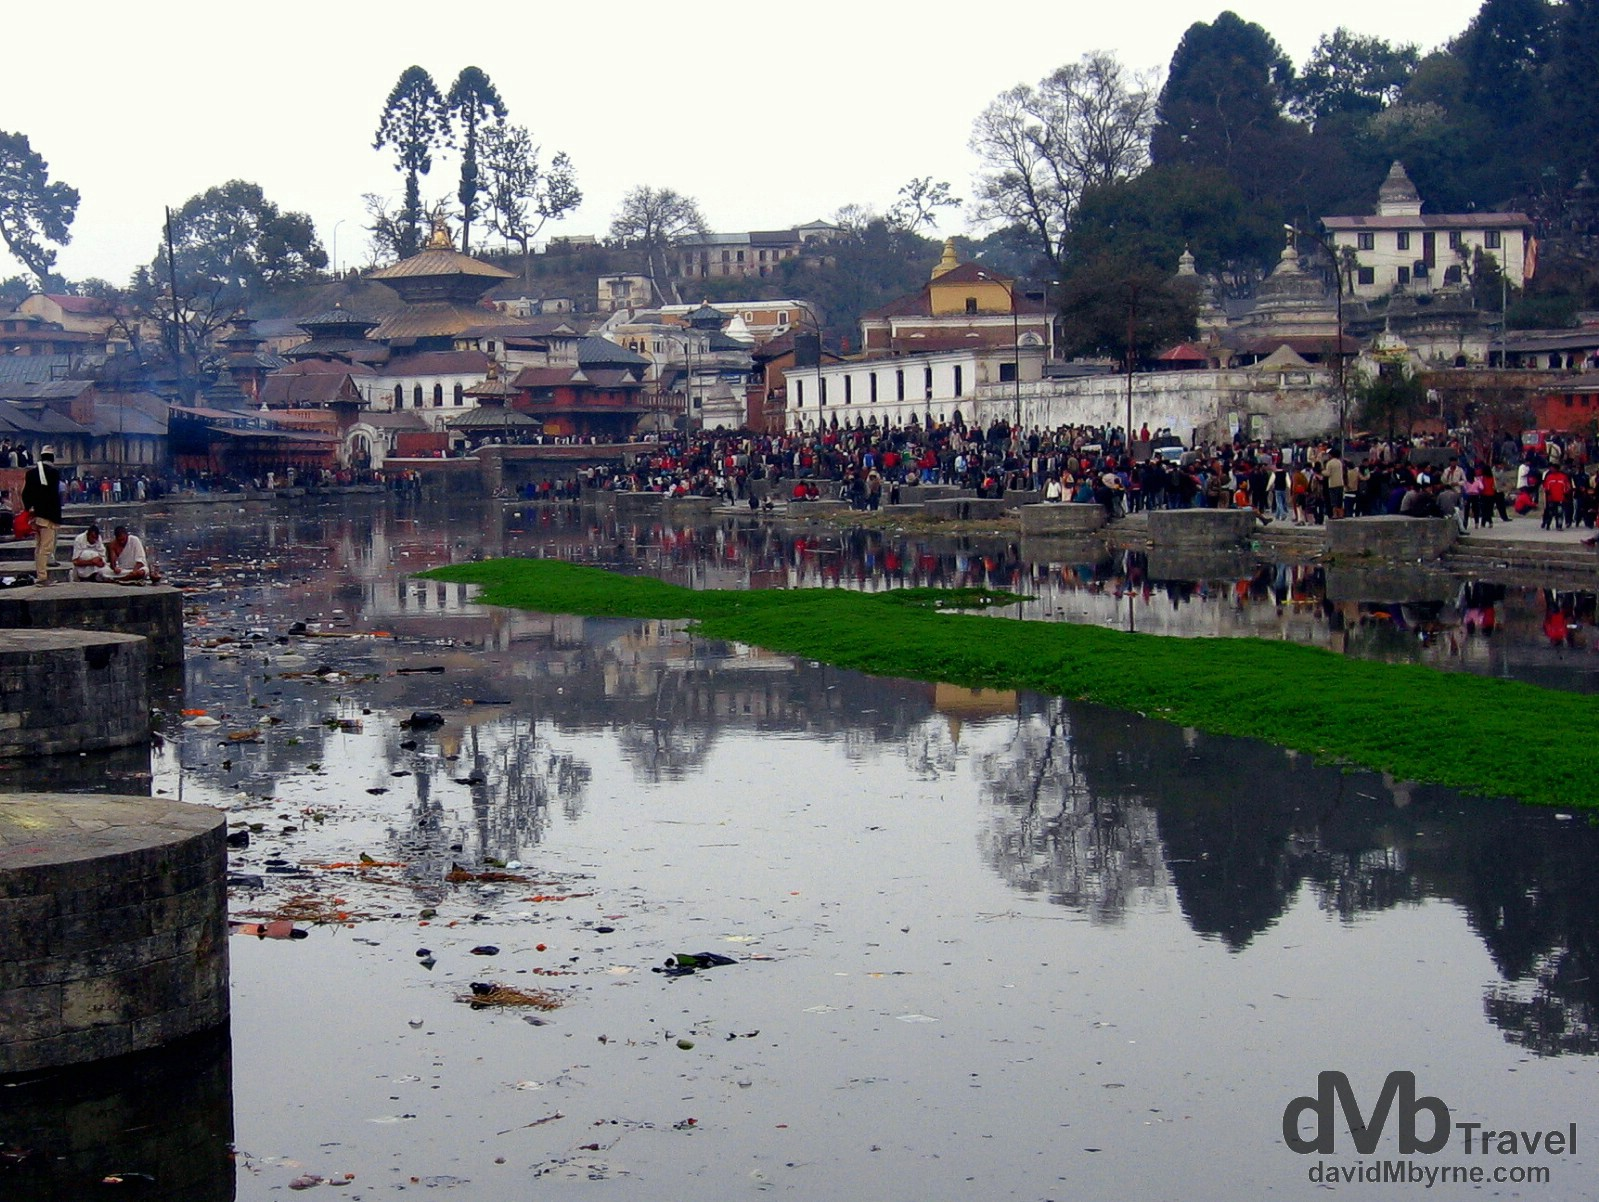 Pashupatinath, the site of the most important Hindi temples in Nepal (gold pagoda in the background), in Kathmandu, Nepal. March 6, 2008.